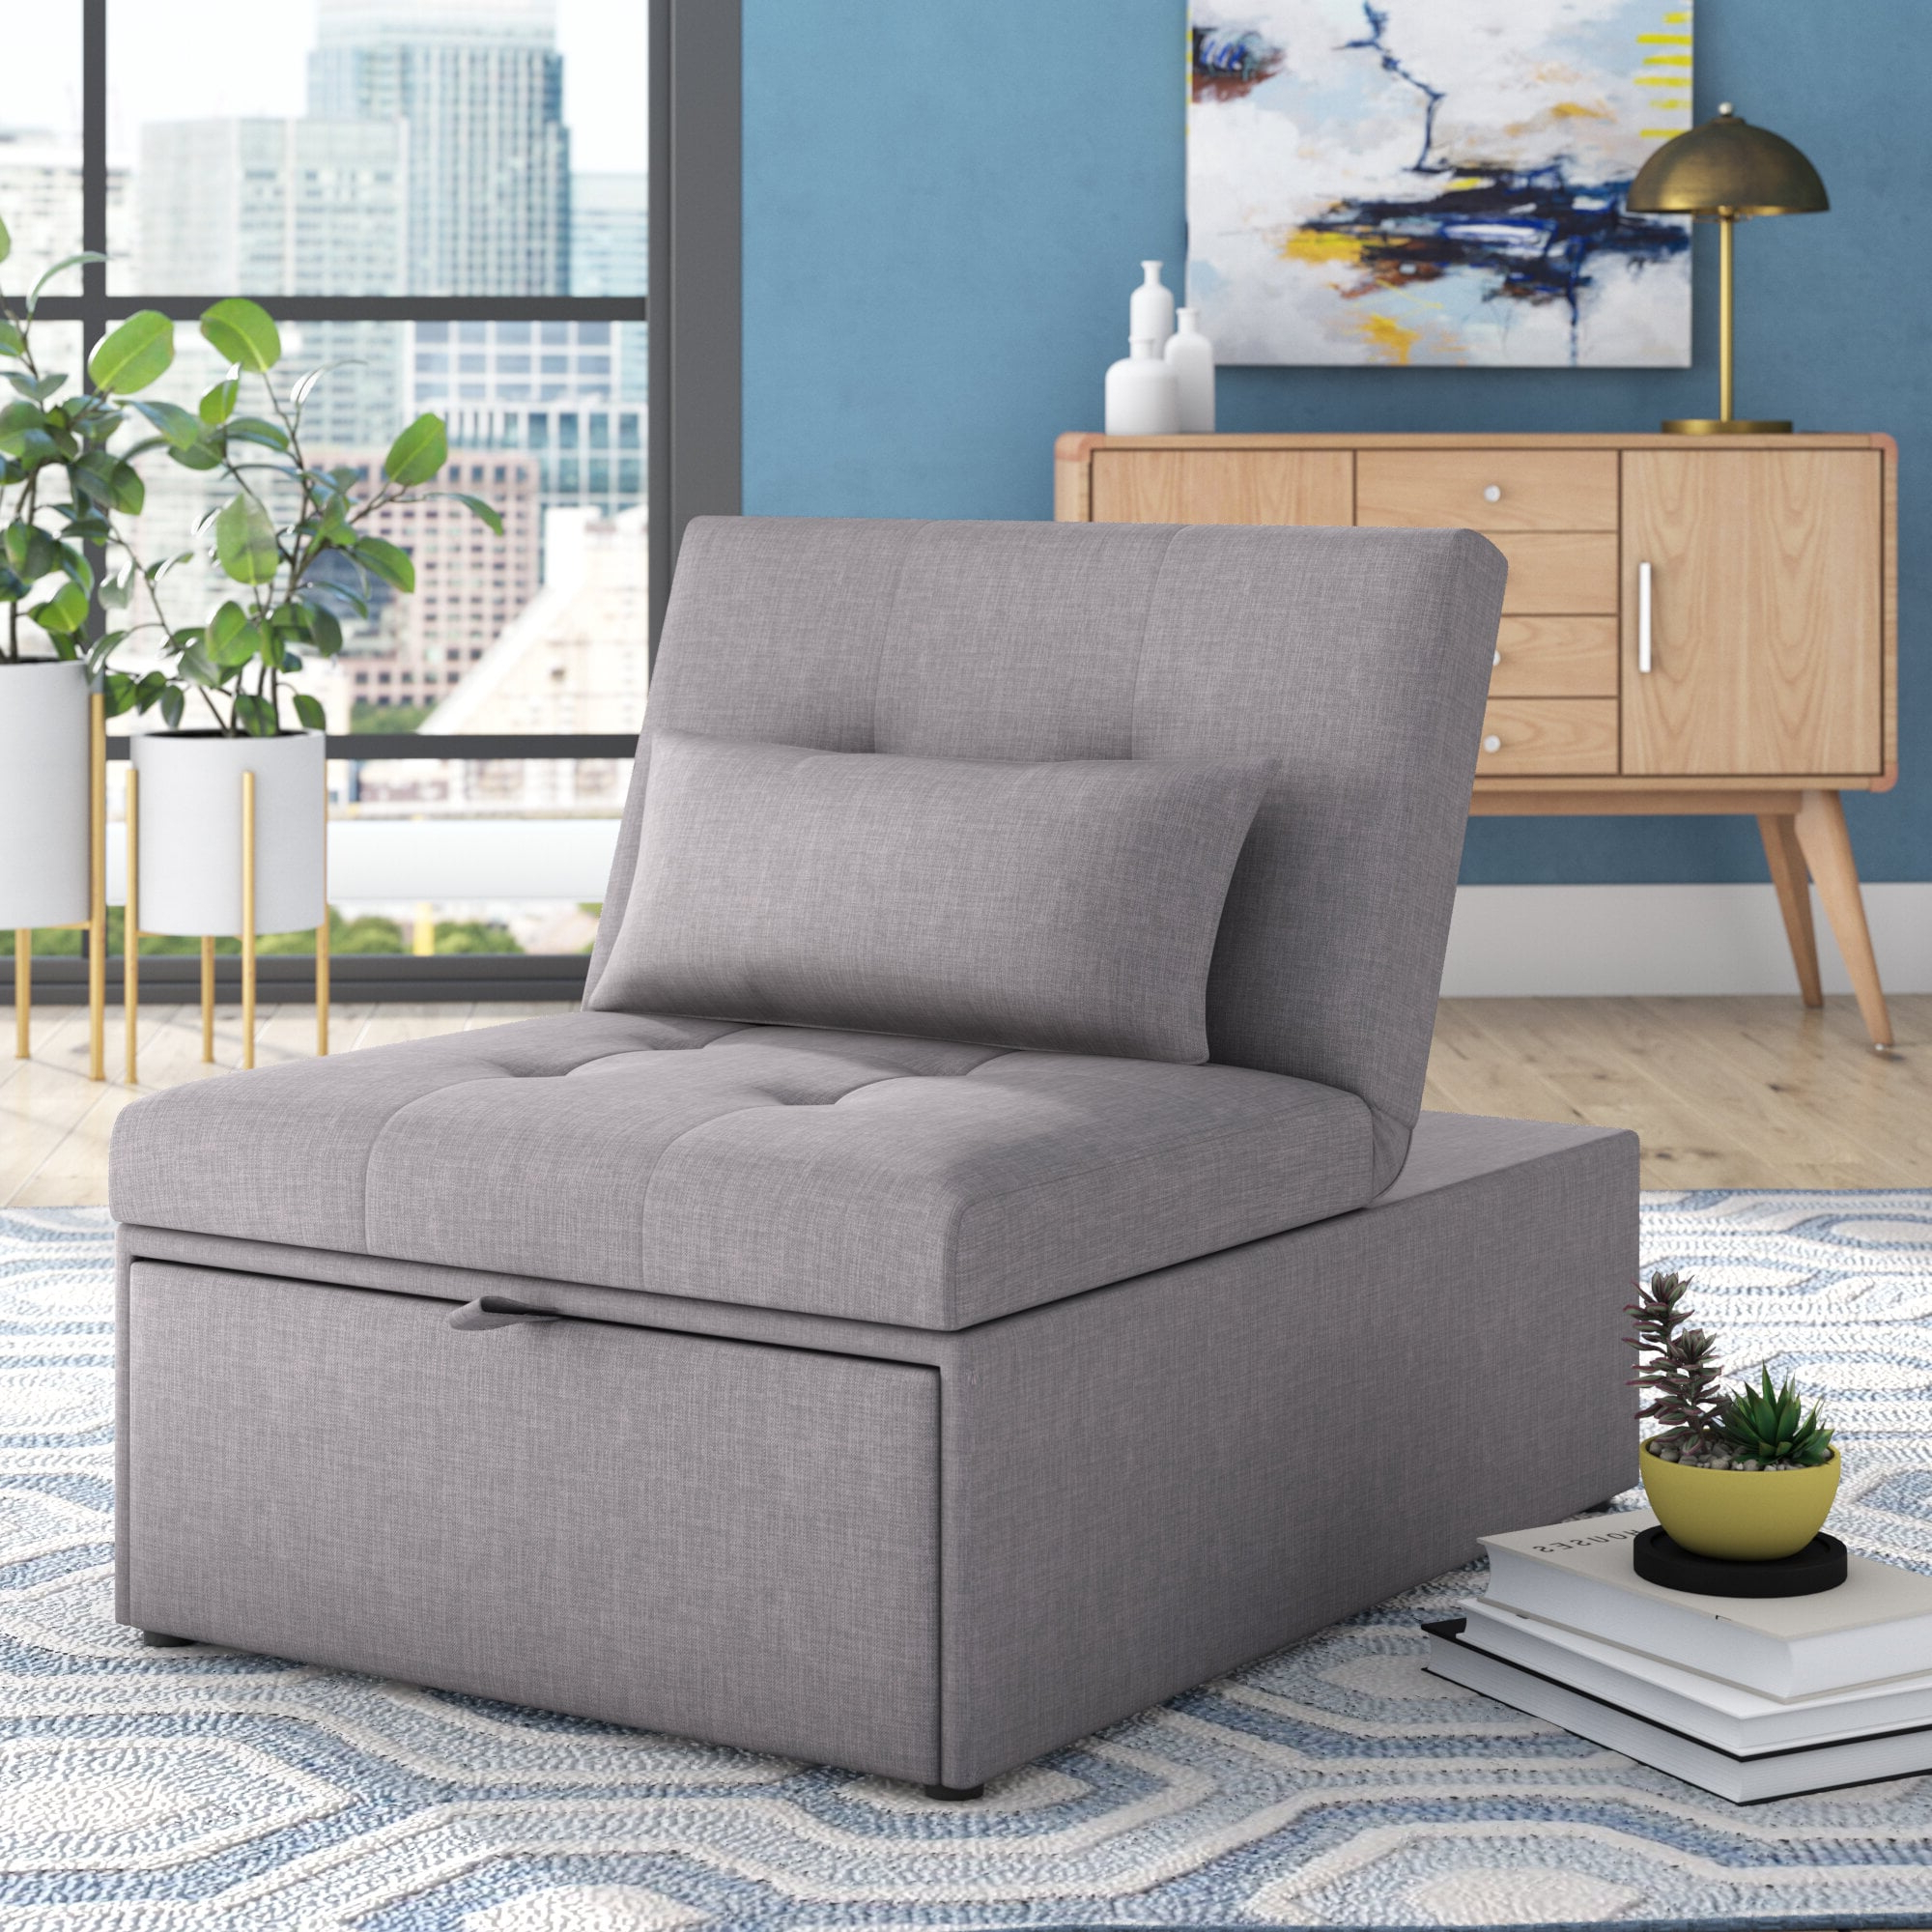 Popsugar Home Regarding Most Recently Released Bolen Convertible Chairs (View 8 of 20)